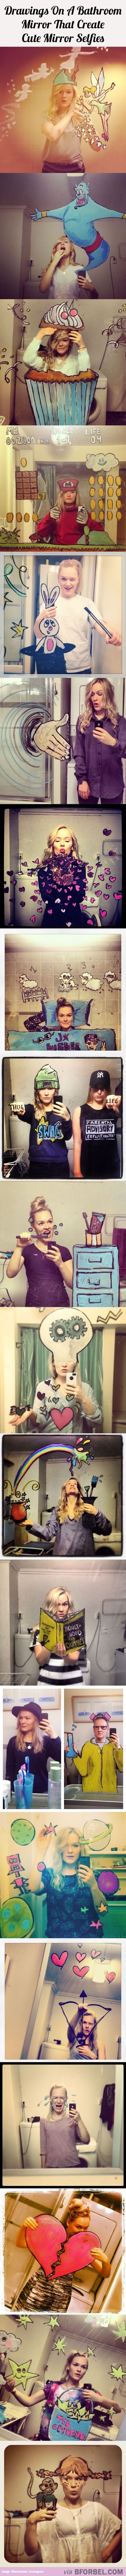 21 Drawings On A Bathroom Mirror That Create Cute Mirror Selfies…